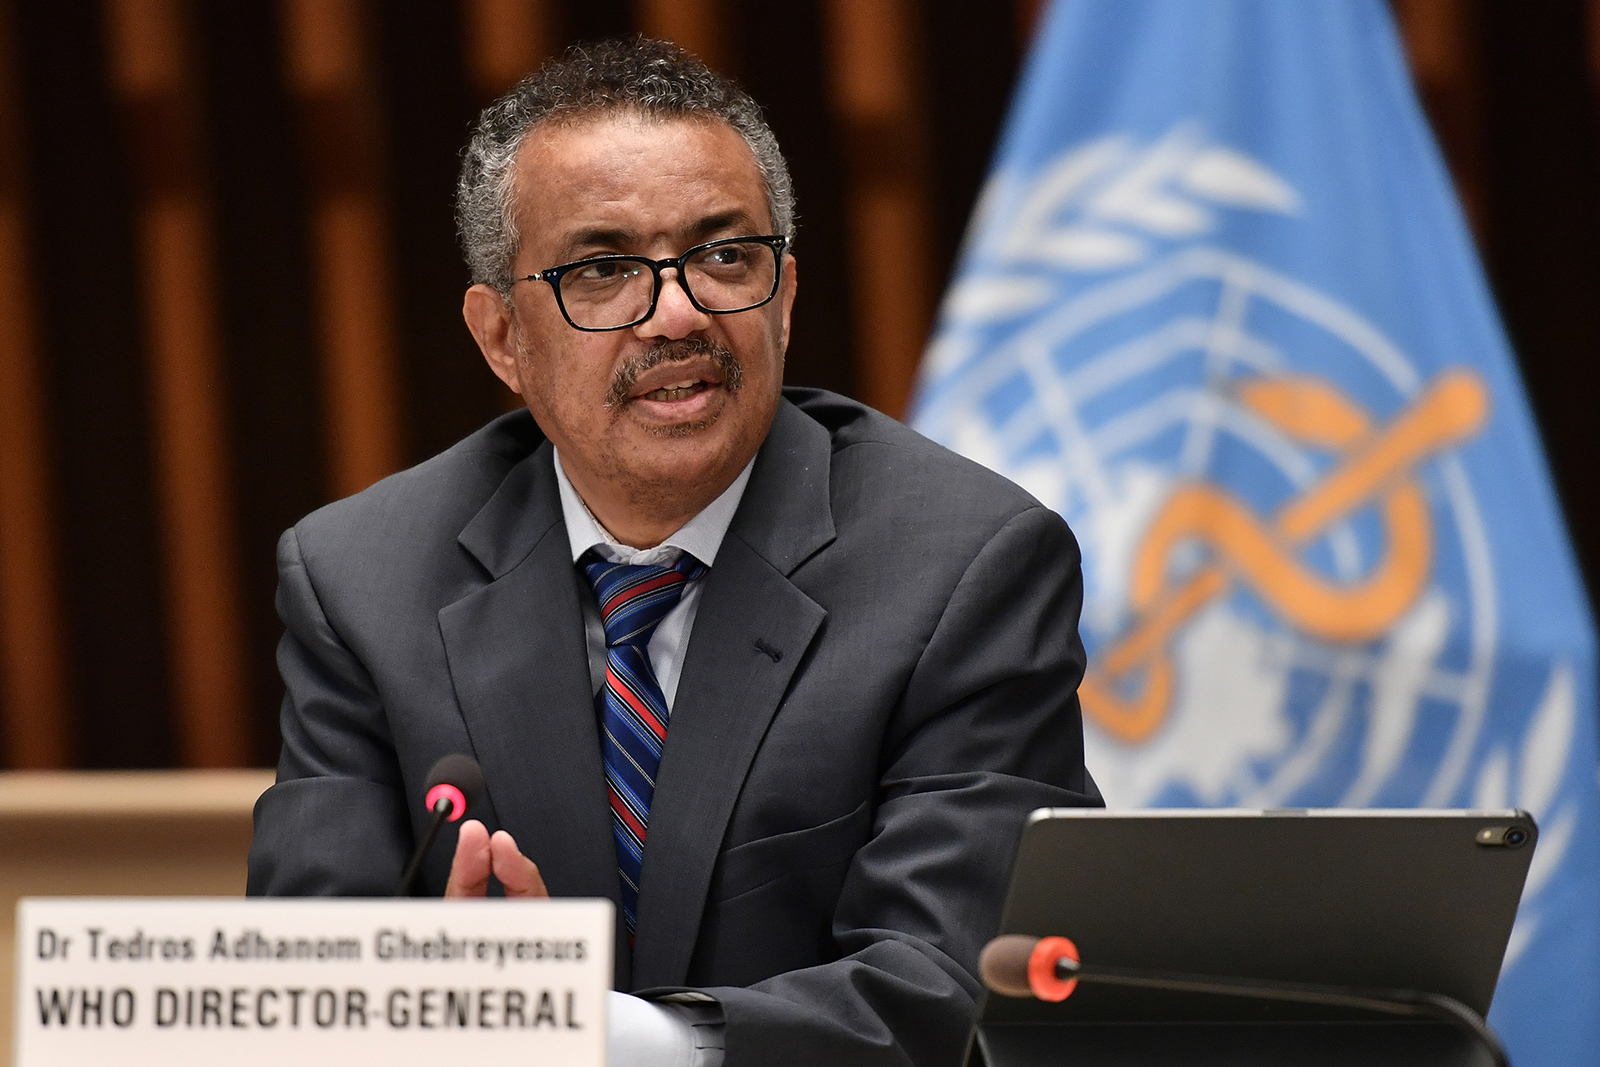 WHO Director-General Dr. Tedros Adhanom Ghebreyesus attends a news conference organized by the Geneva Association of United Nations Correspondents amid the Covid-19 pandemic on July 3, 2020 in Geneva.